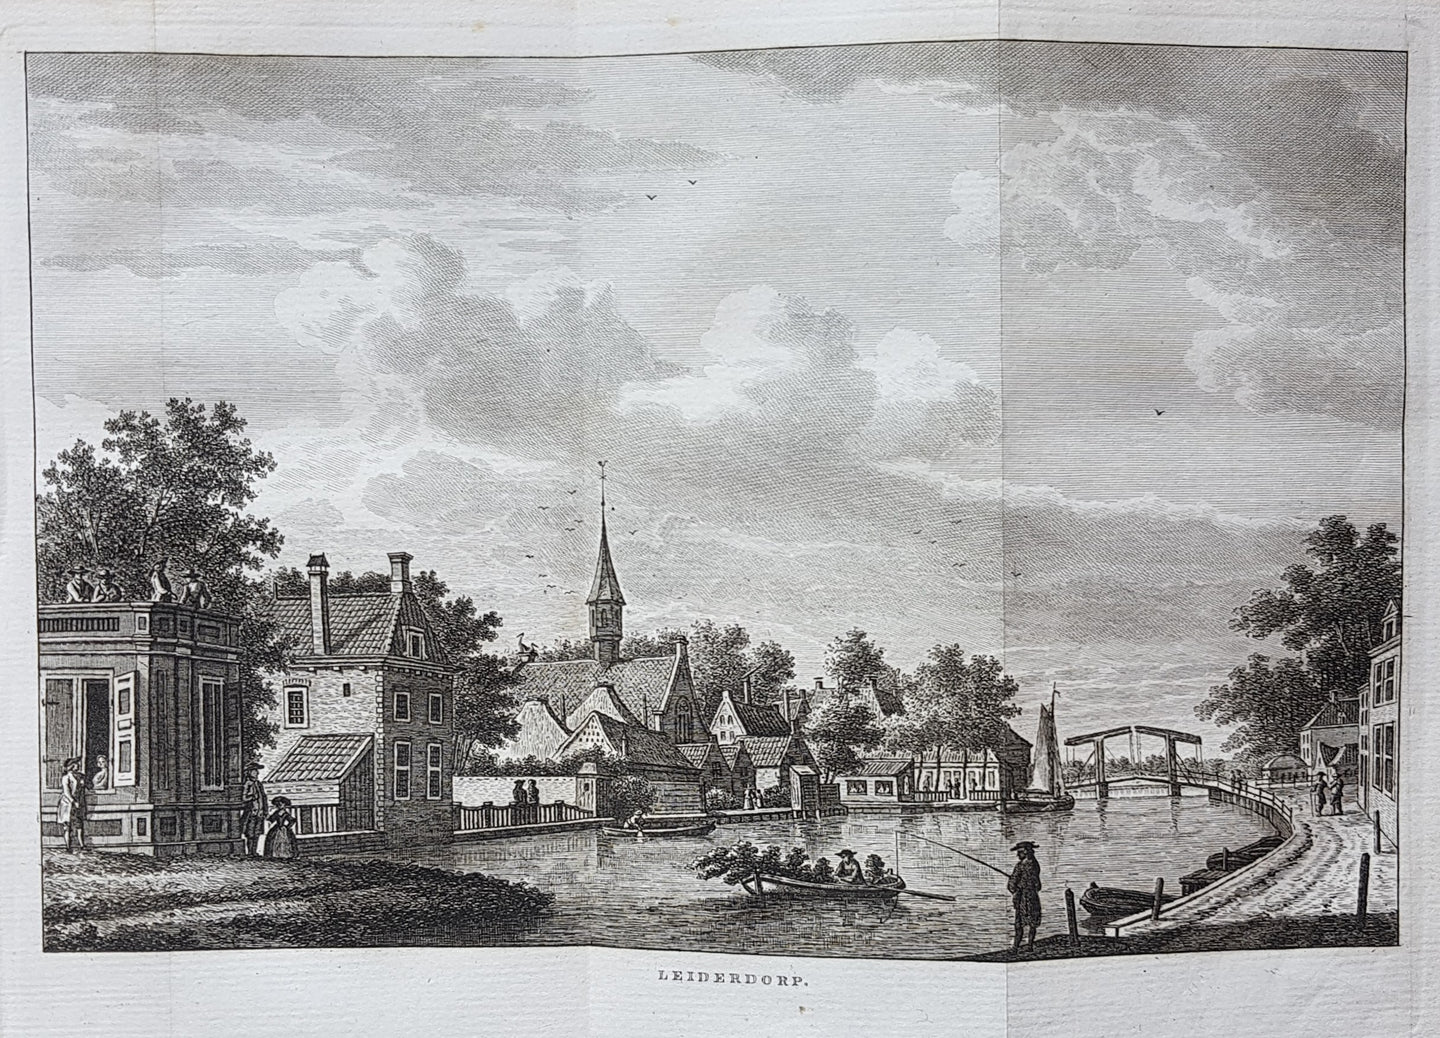 Leiderdorp - KF Bendorp - 1793